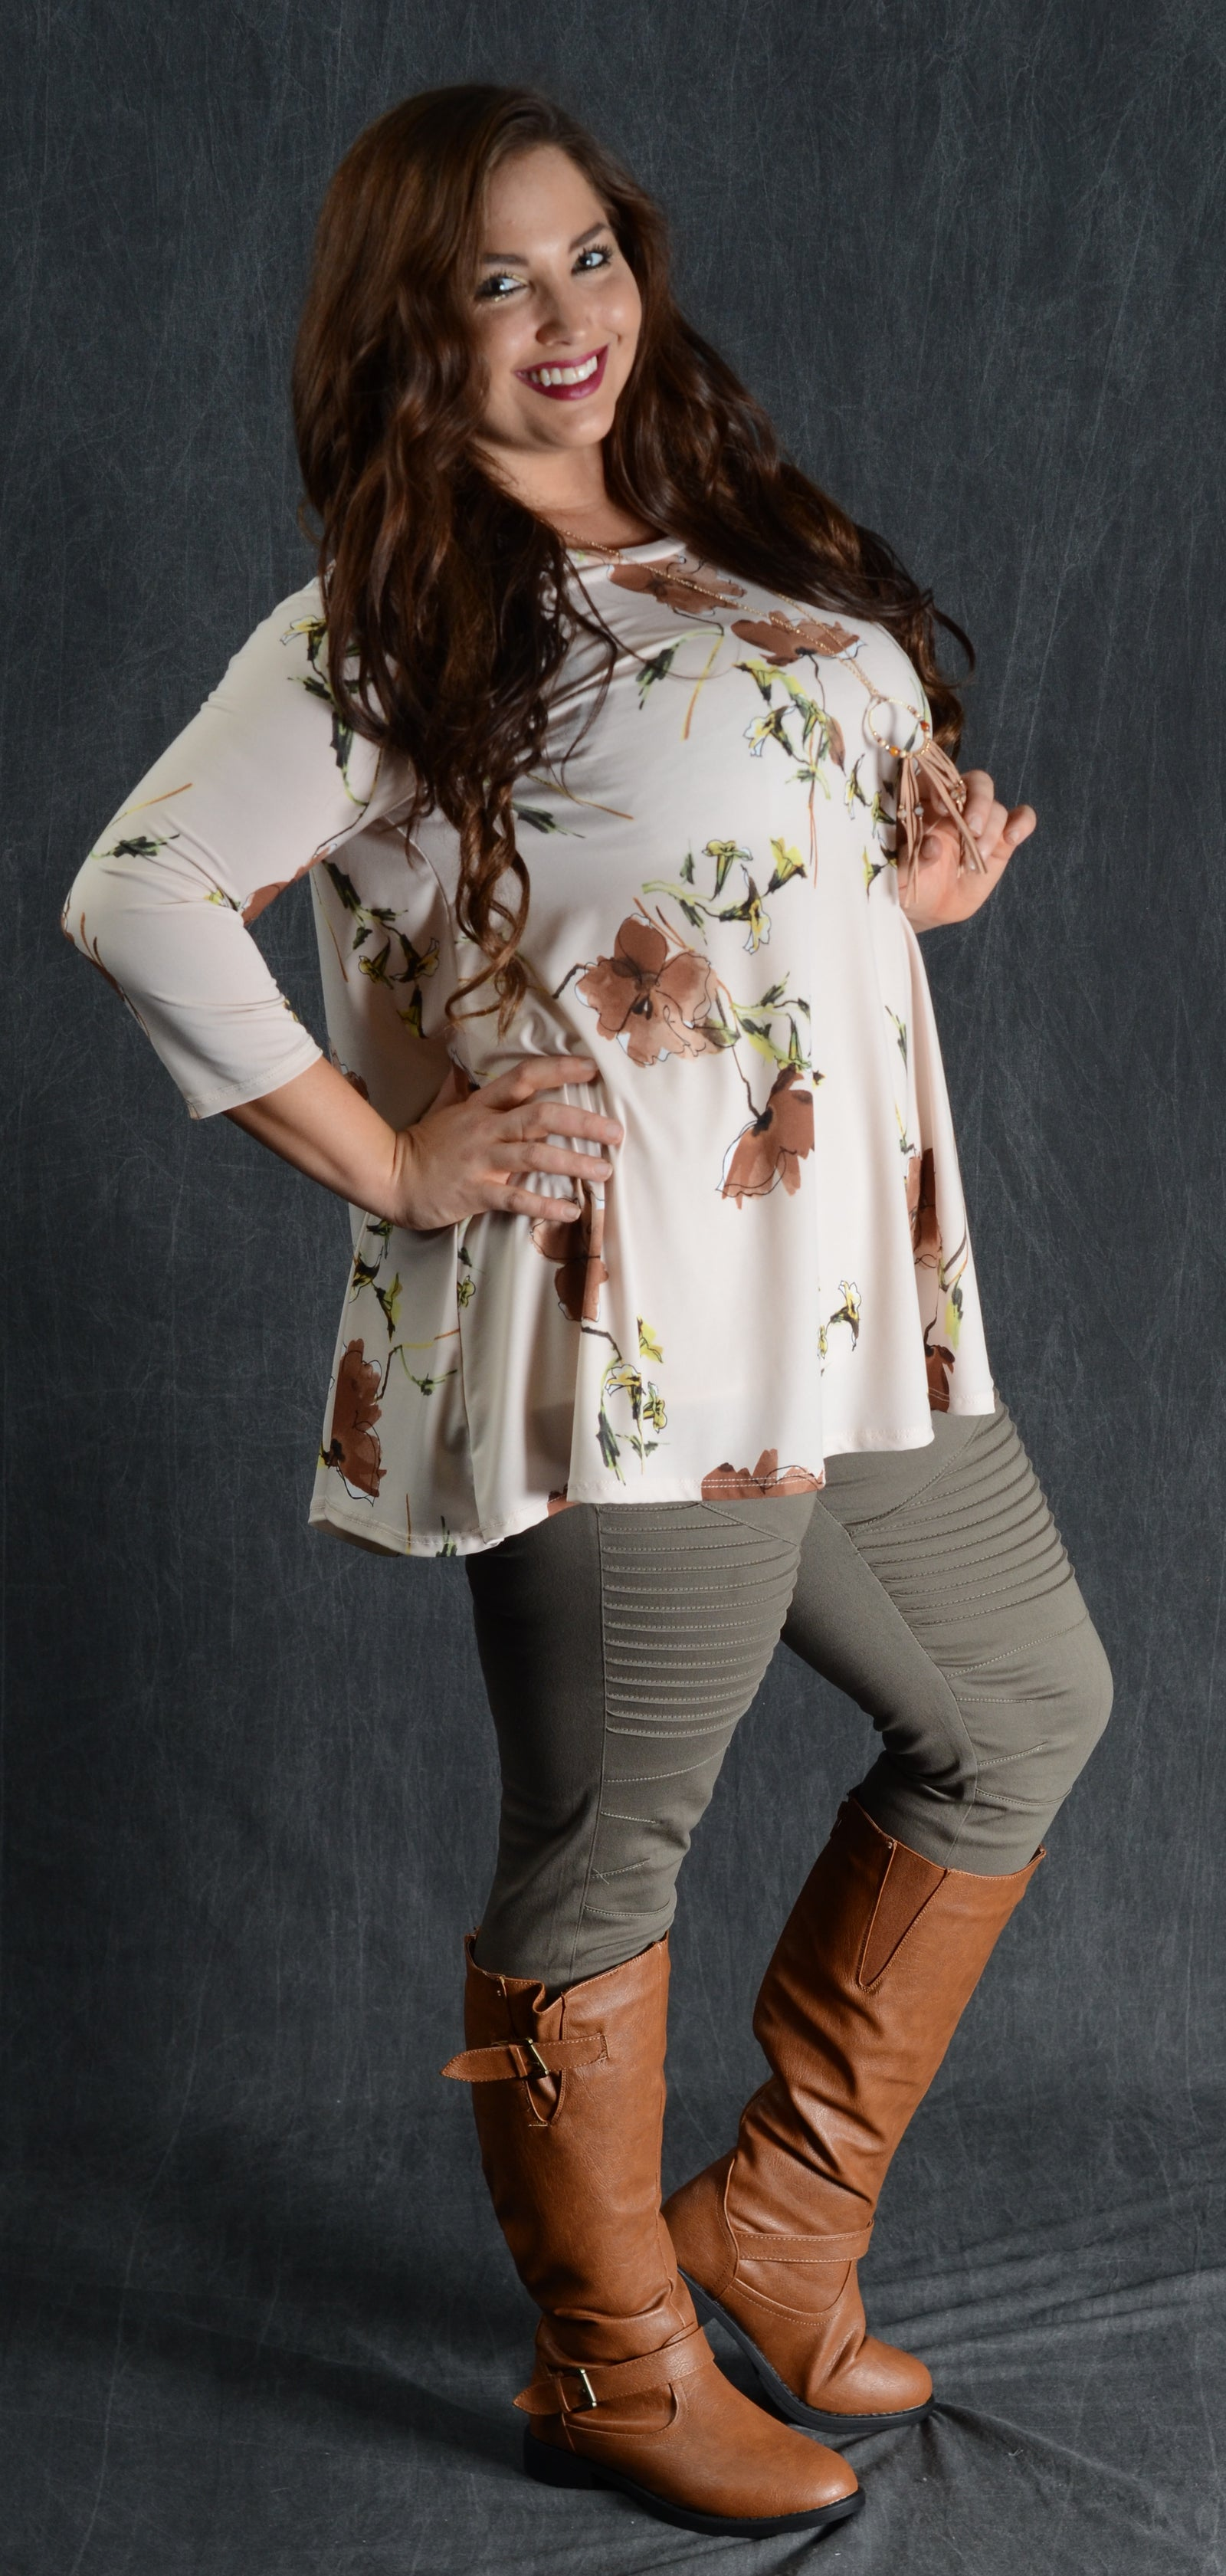 Ivory & Taupe Floral Top - www.mycurvystore.com - Curvy Boutique - Plus Size